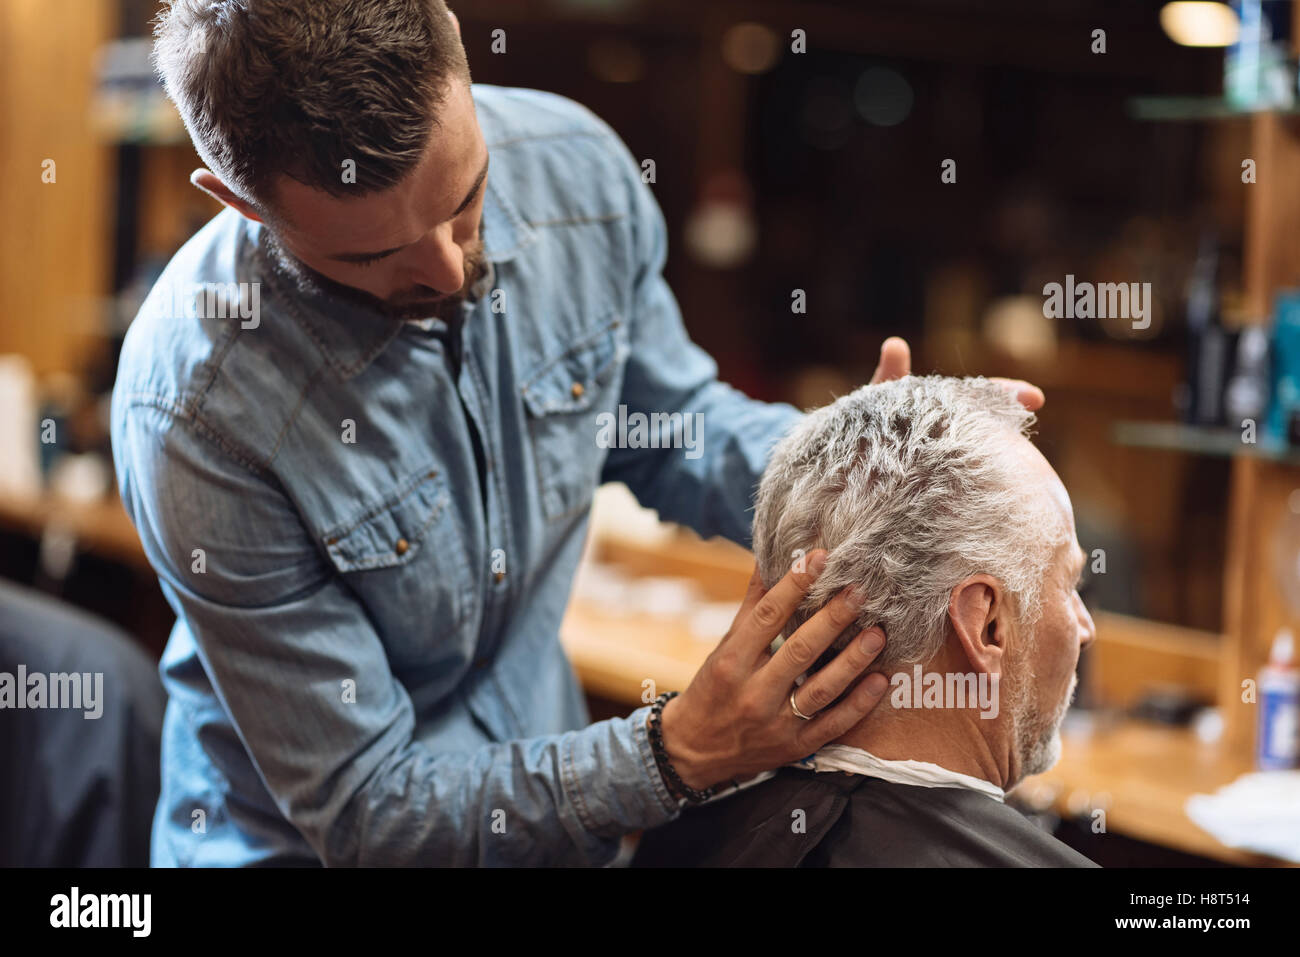 Back view of barber styling seniors client hair - Stock Image